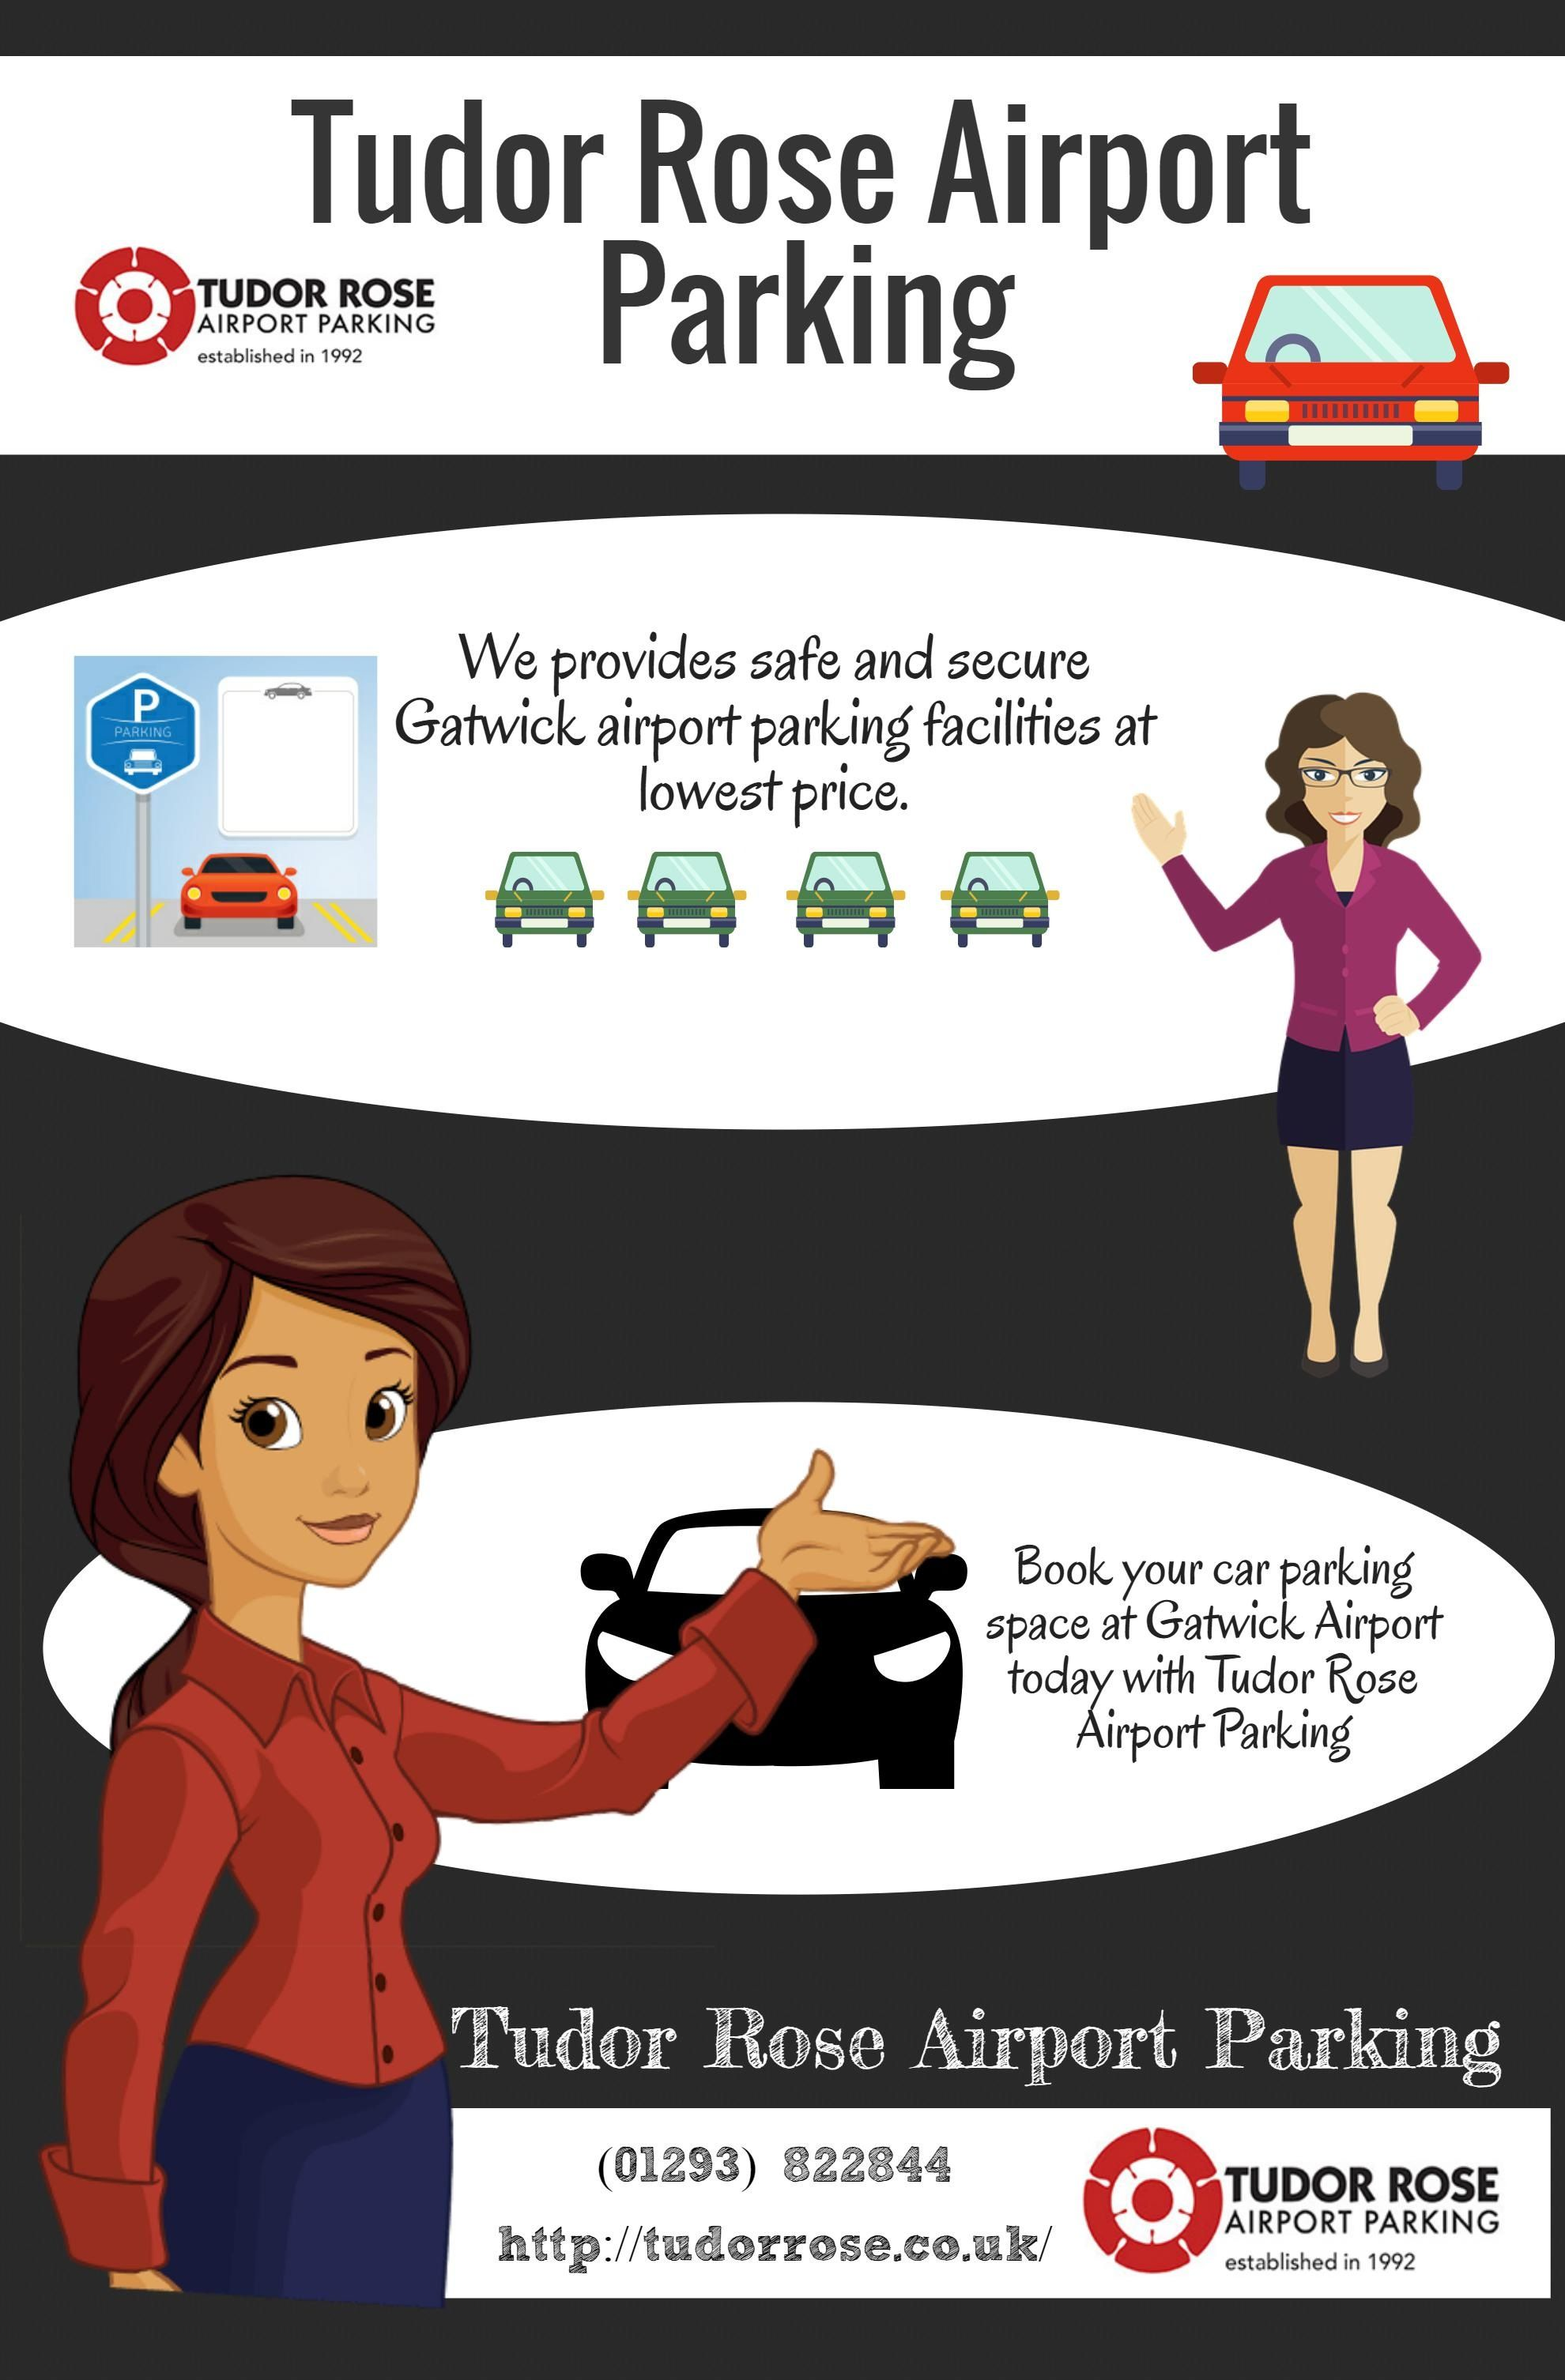 Tudor rose airport parking for more details please visit www tudor rose airport parking for more details please visit tudorrose car parking gatwick airport pinterest kristyandbryce Choice Image